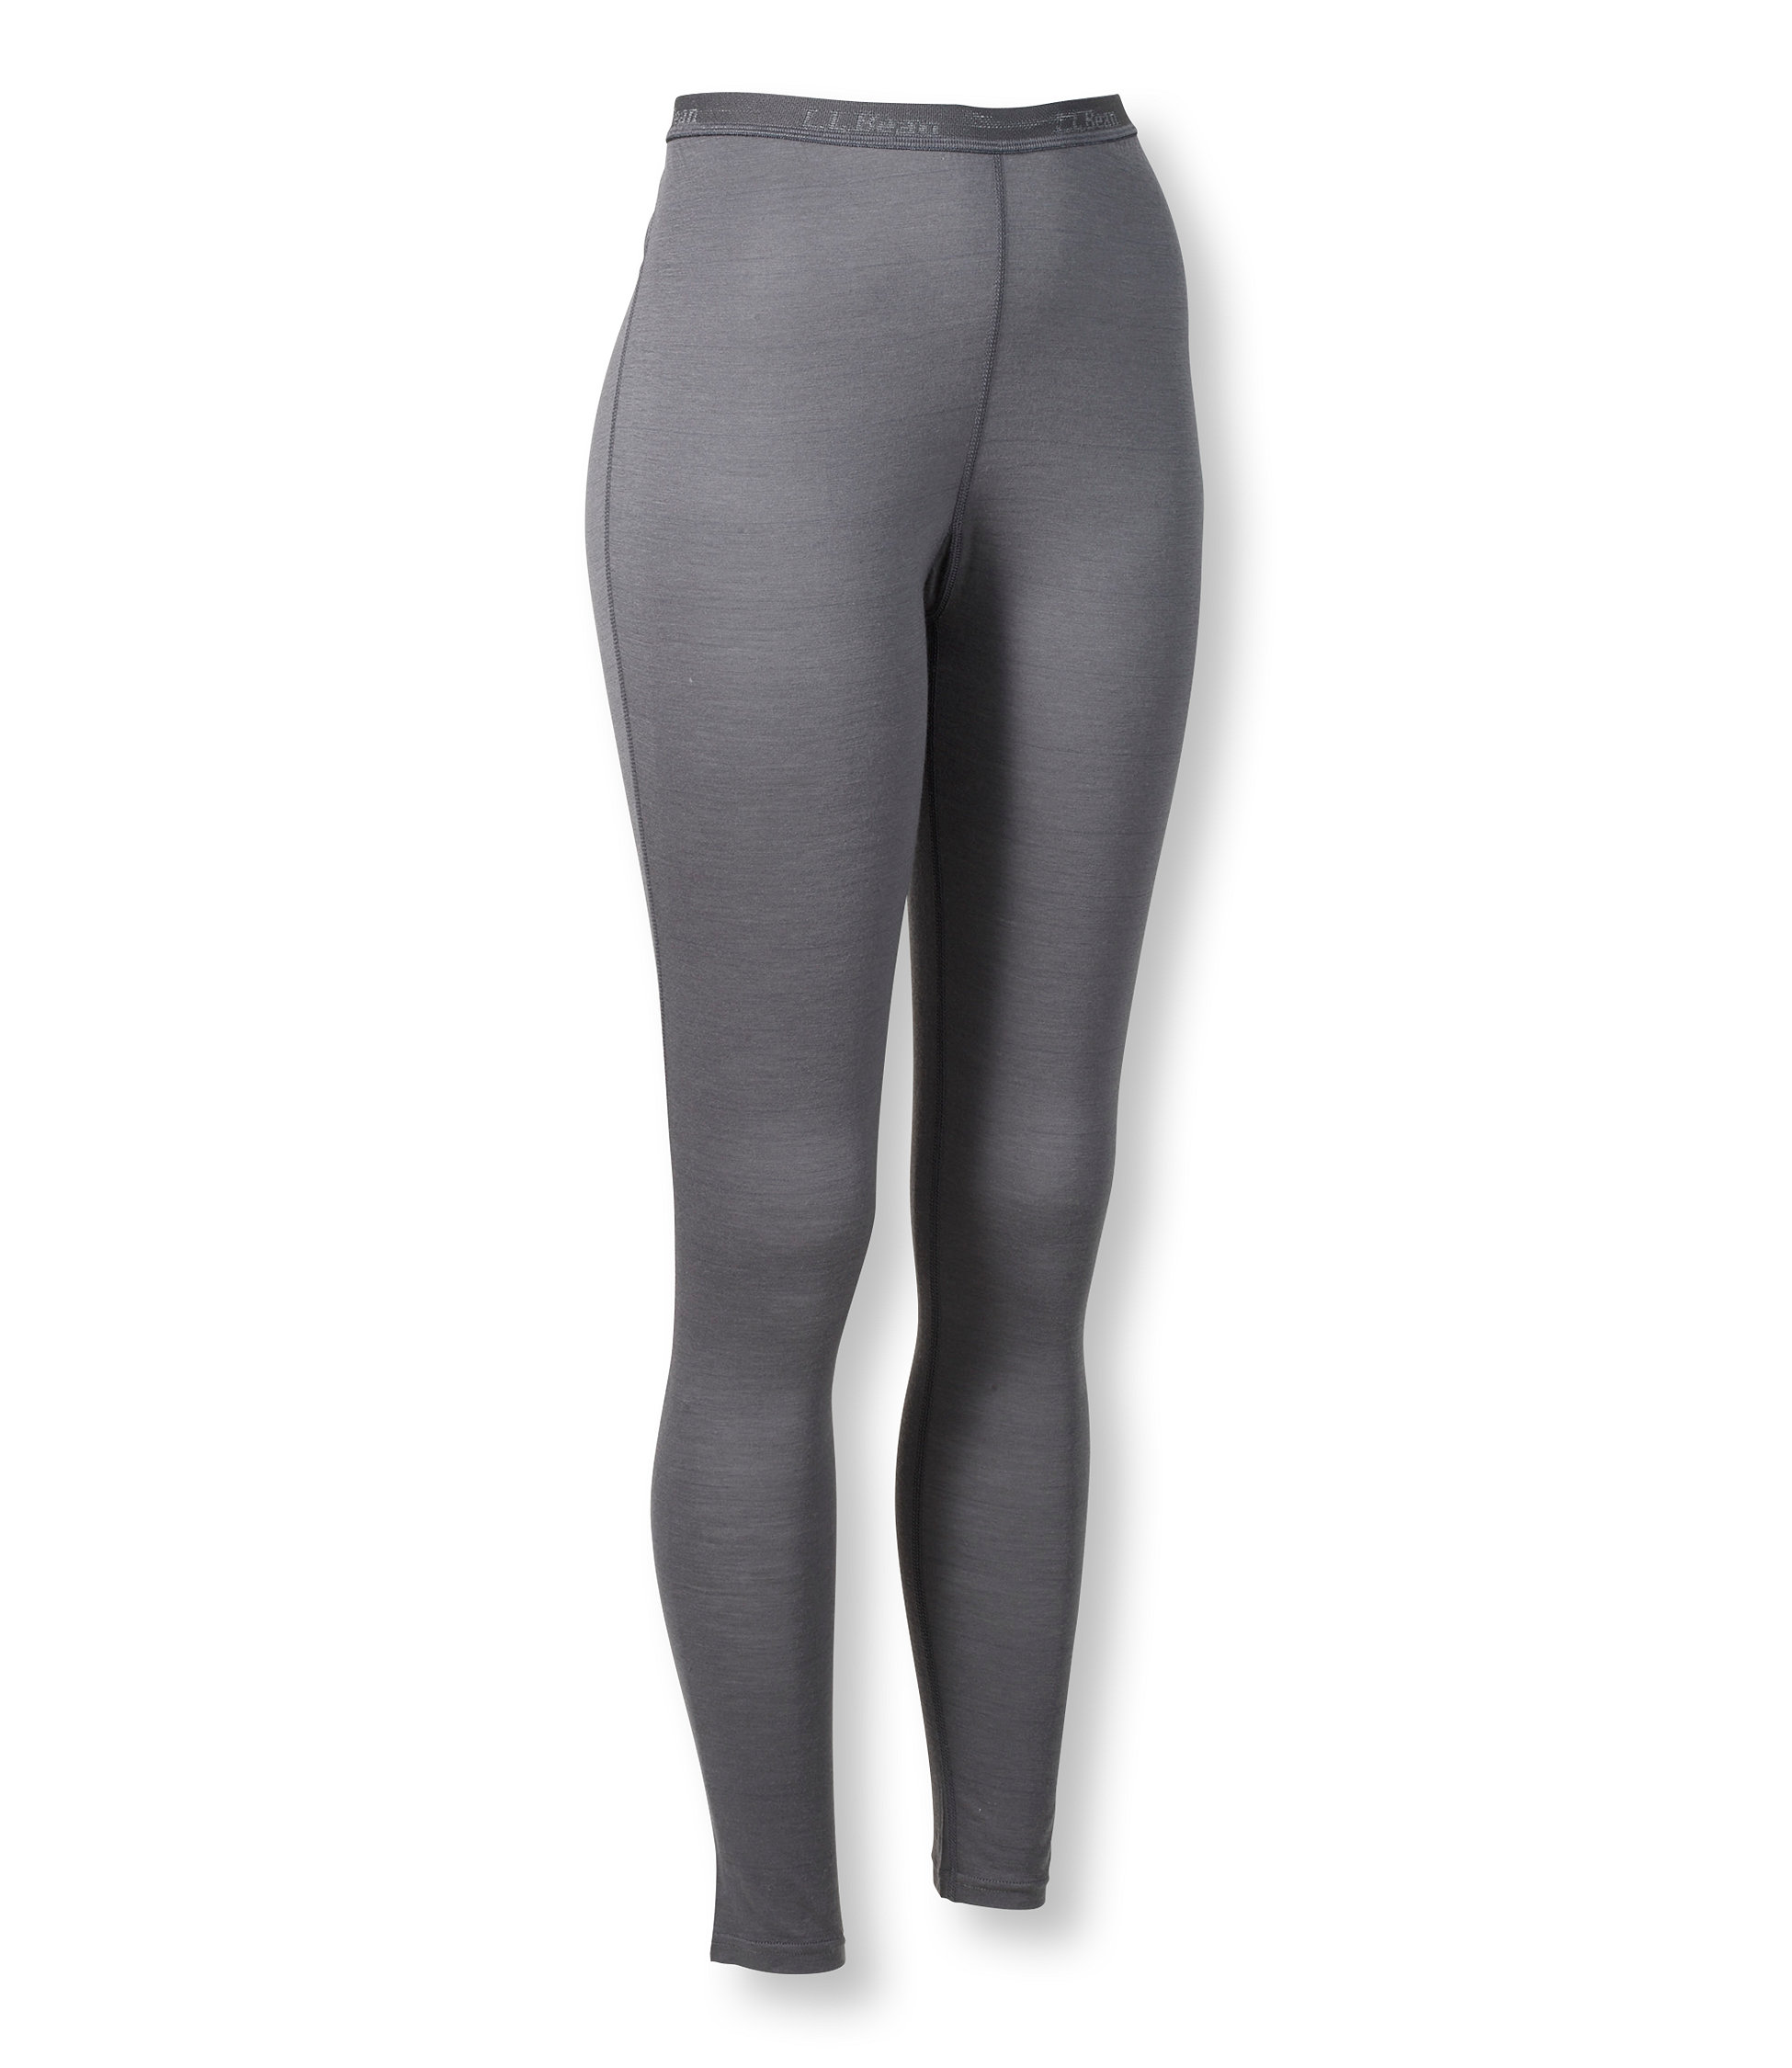 photo: L.L.Bean Women's Cresta Wool Base Layer, Pants Lightweight base layer bottom